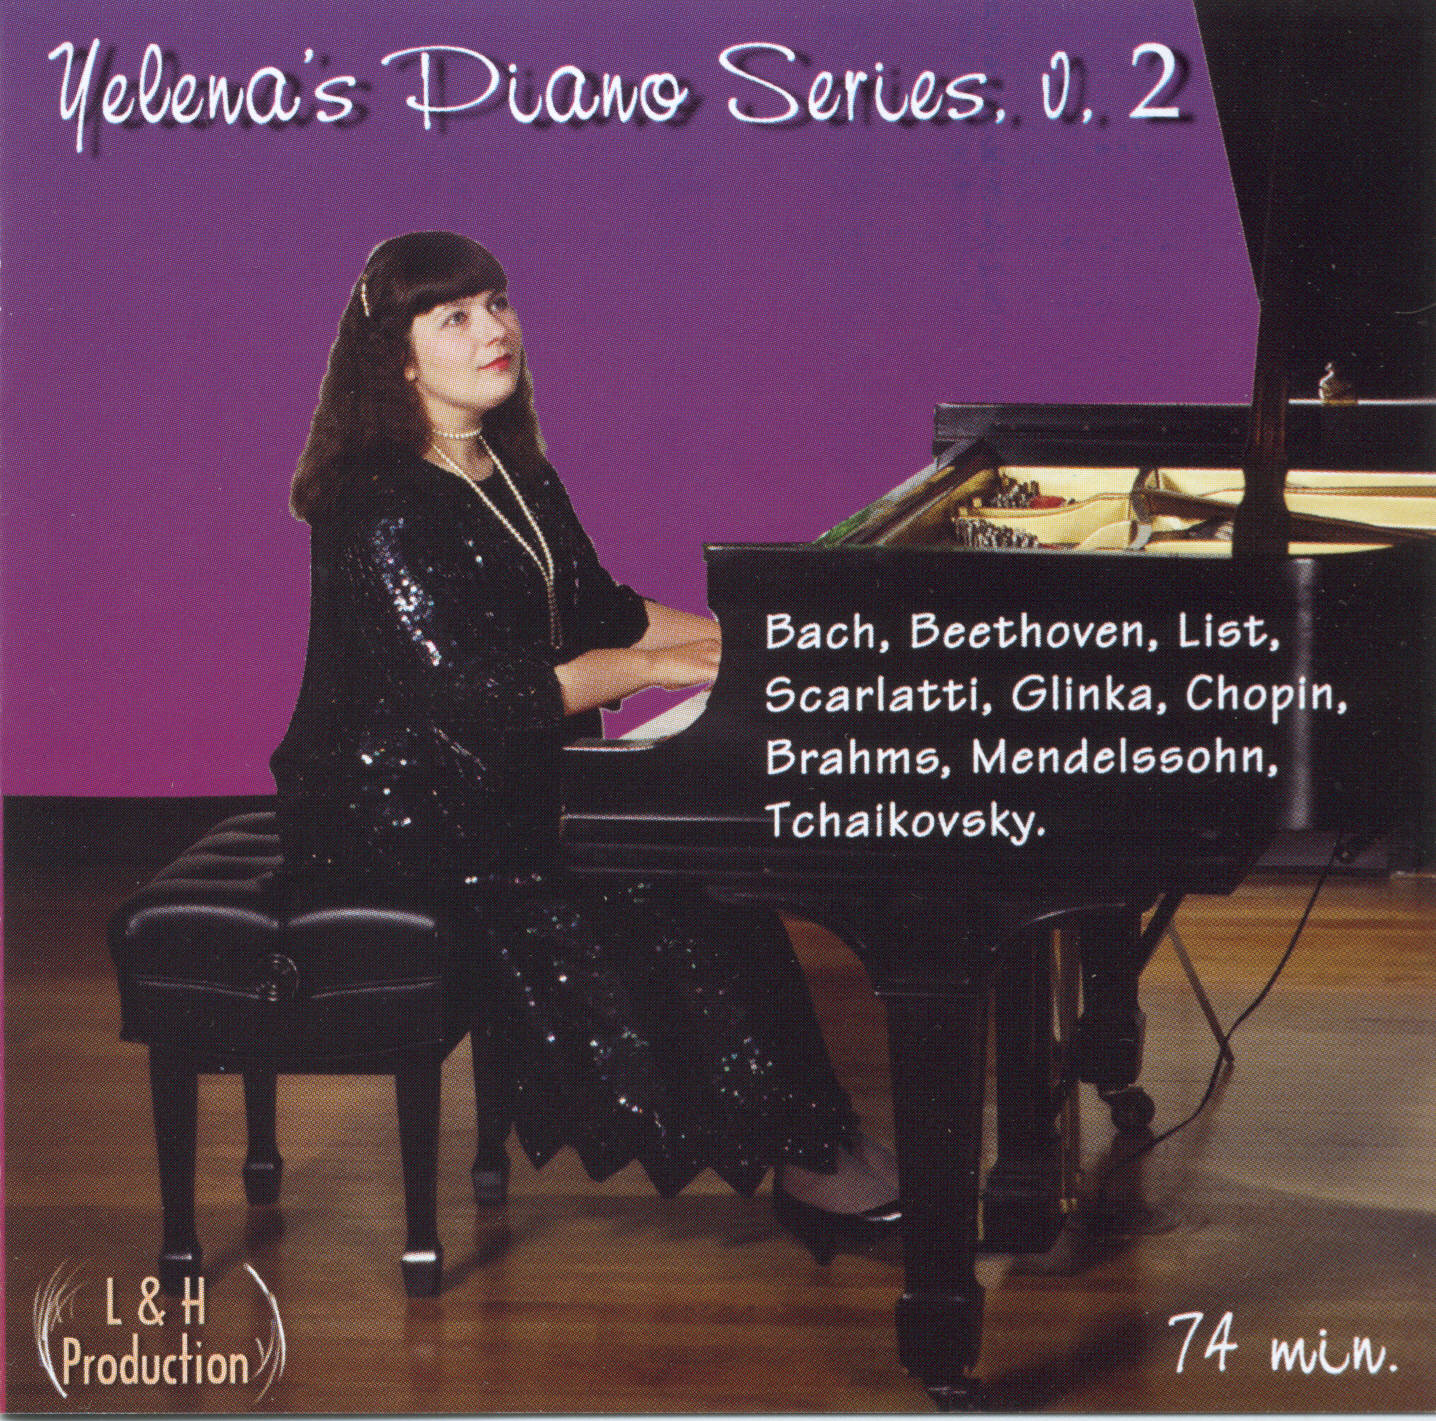 Piano Series, v.2 booklet